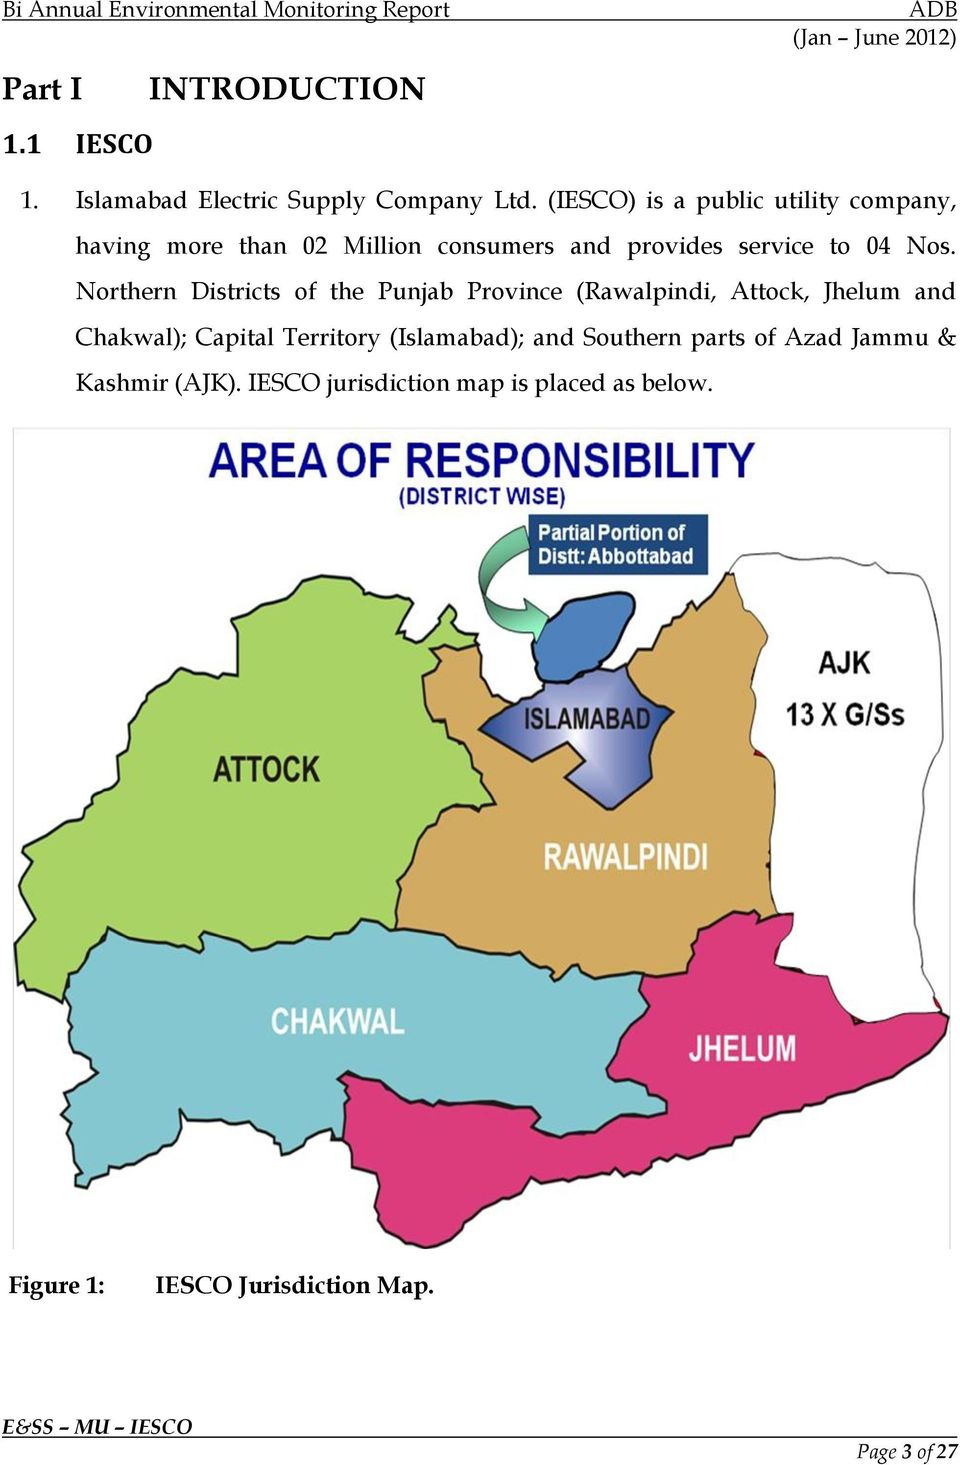 Northern Districts of the Punjab Province (Rawalpindi, Attock, Jhelum and Chakwal); Capital Territory